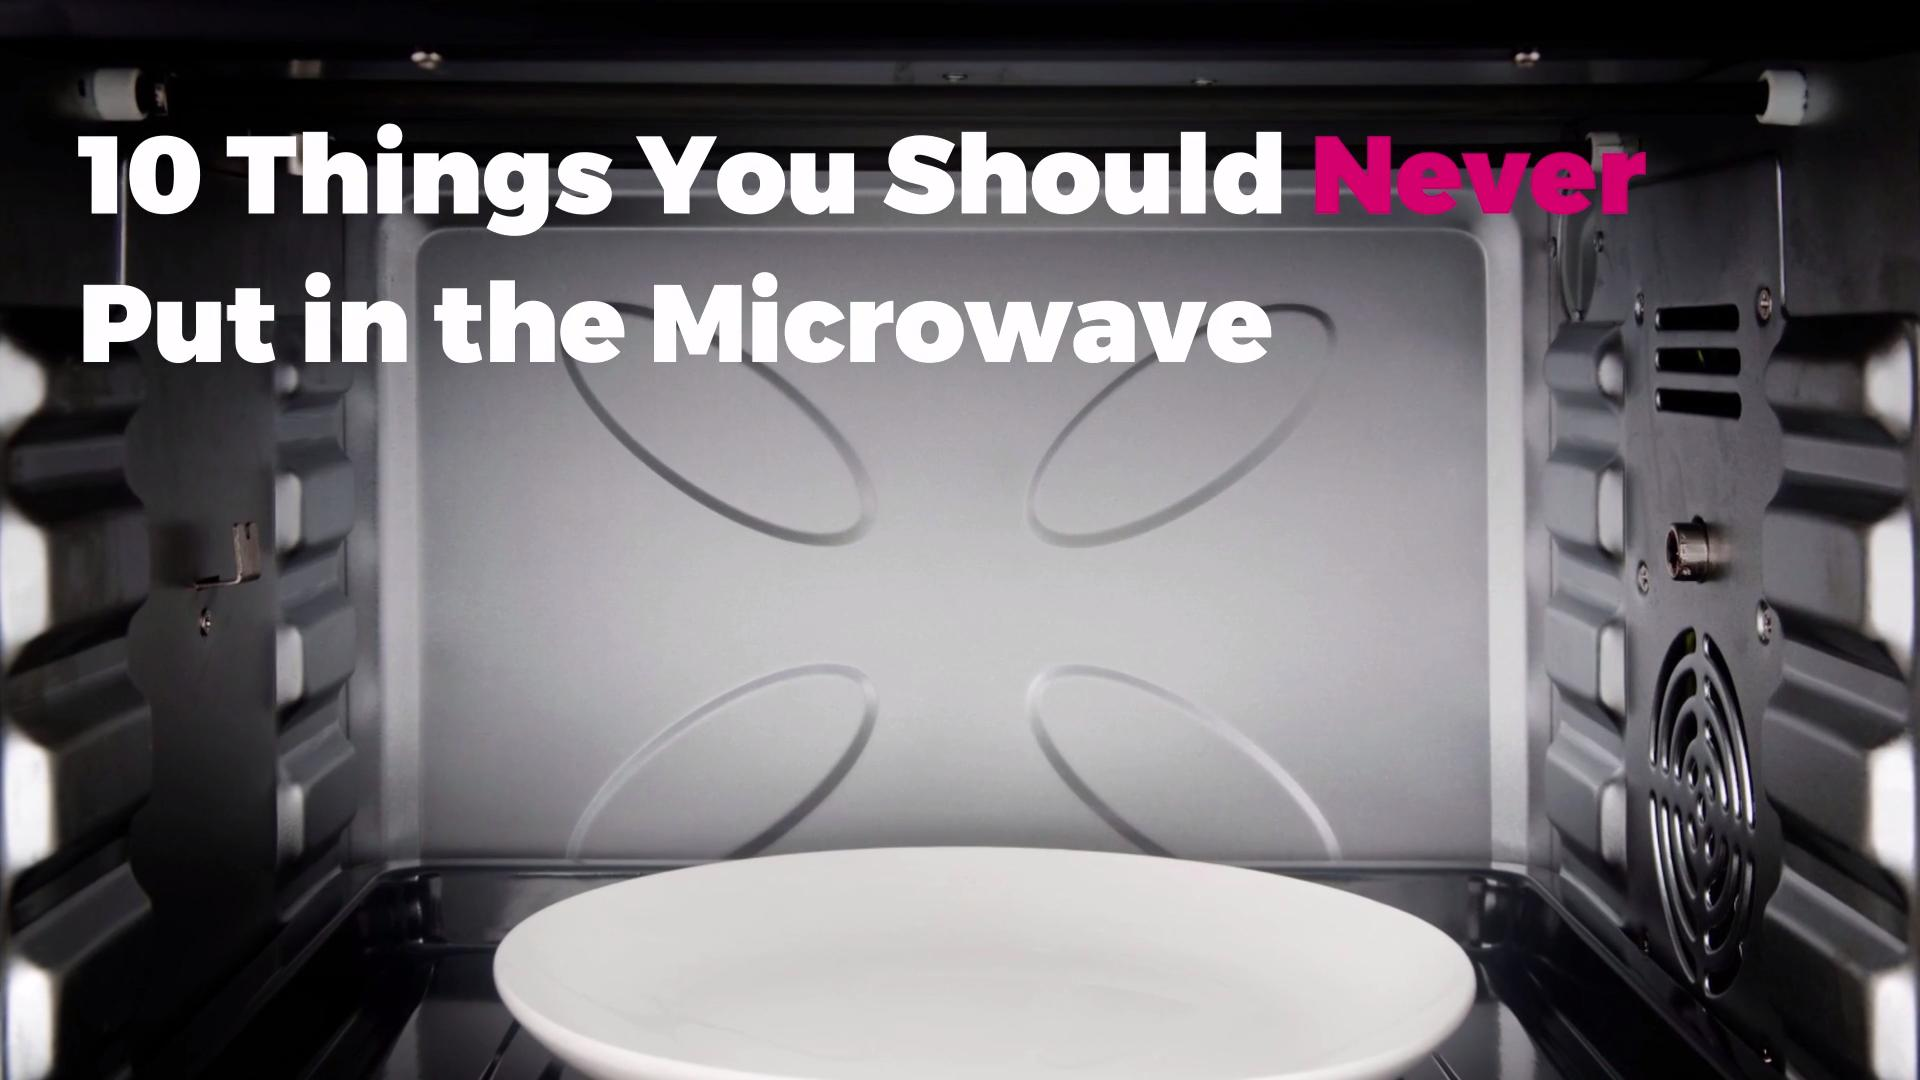 10 Things You Should Never Put in the Microwave